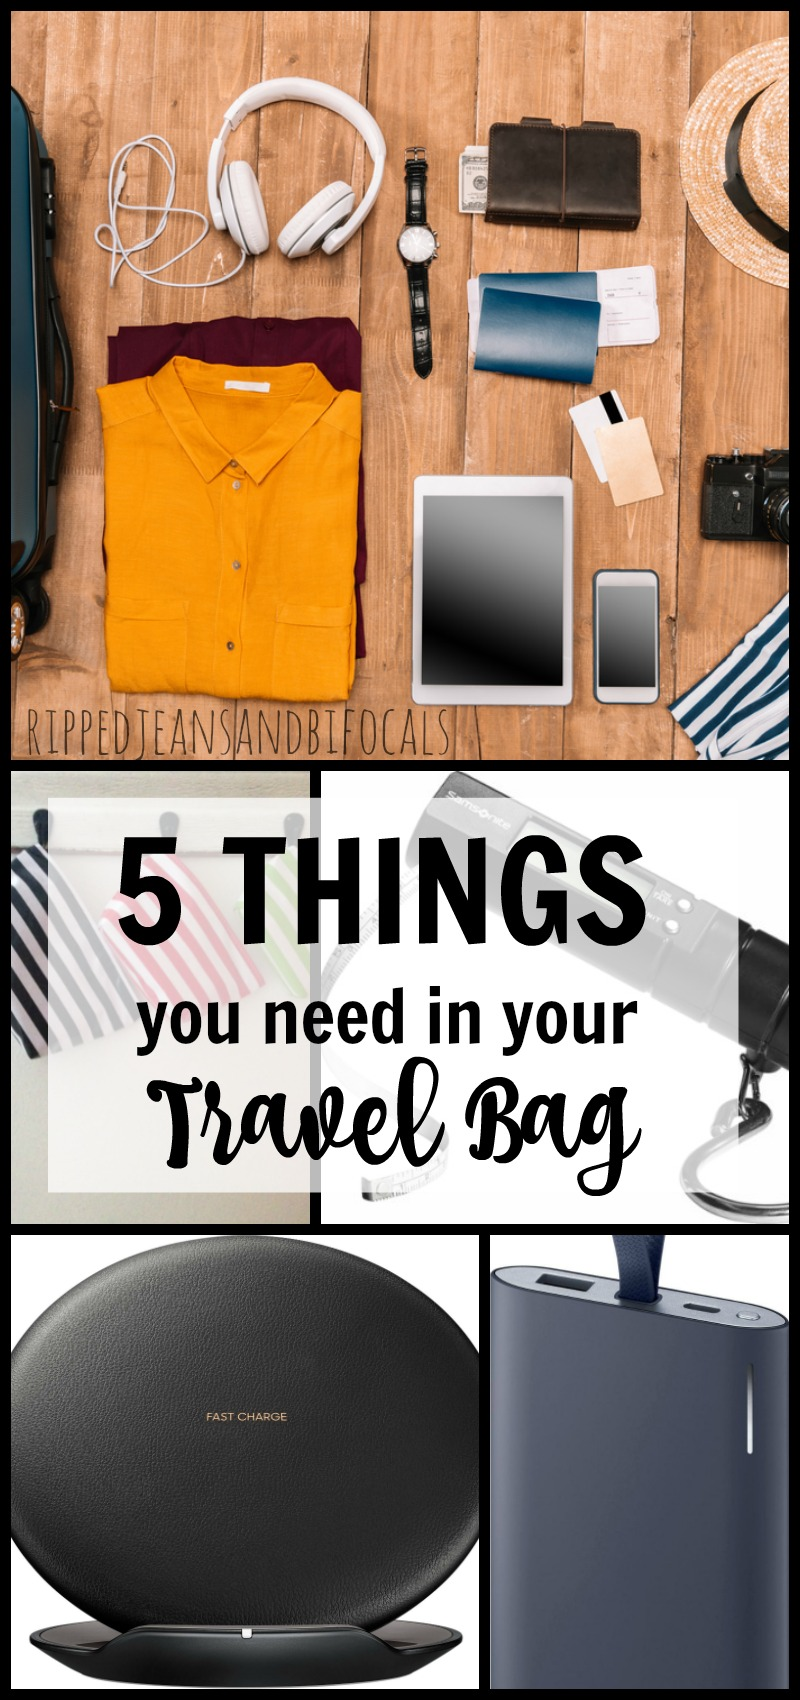 Five things you need in your travel bag|Ripped Jeans and Bifocals